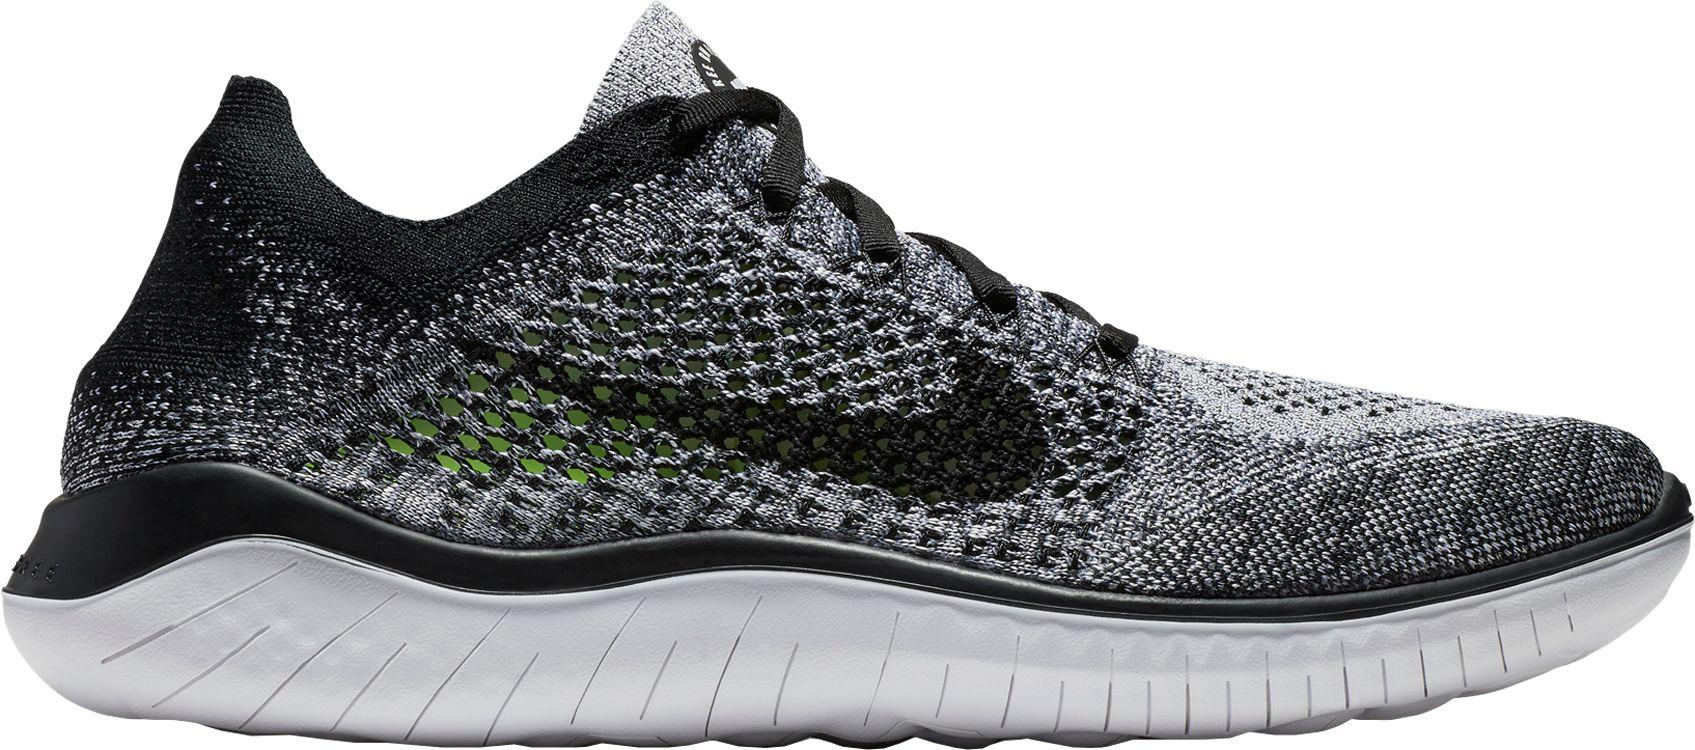 db7958dde27f8 Nike Wmns Free Rn Flyknit 2018 Competition Running Shoes, (white/black 101)  3 Uk